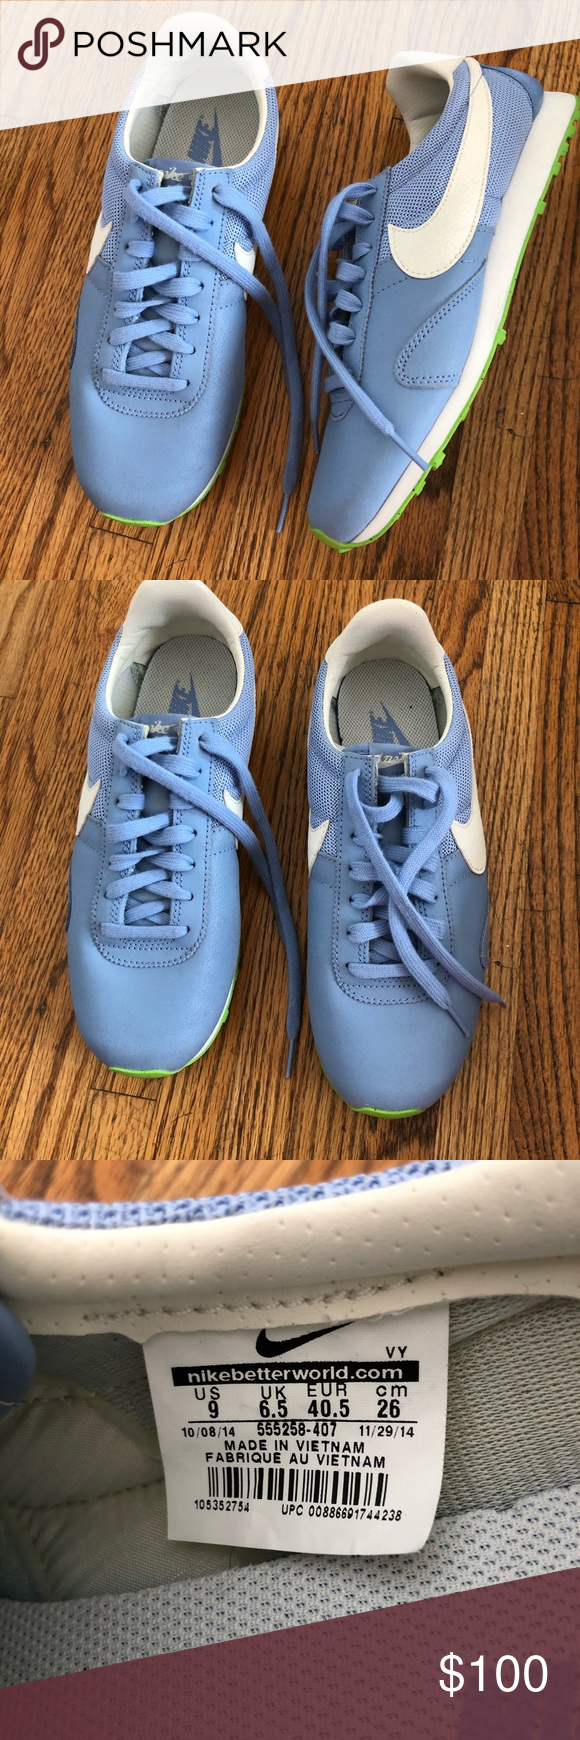 wholesale dealer 7aa06 cf662 Nike womens Pre Montreal Racer Vintage size 9 Nike womens Pre Montreal  Racer Vintage size 9 RARE nikes Excellent condition Style 555258-407 Nike  Shoes ...